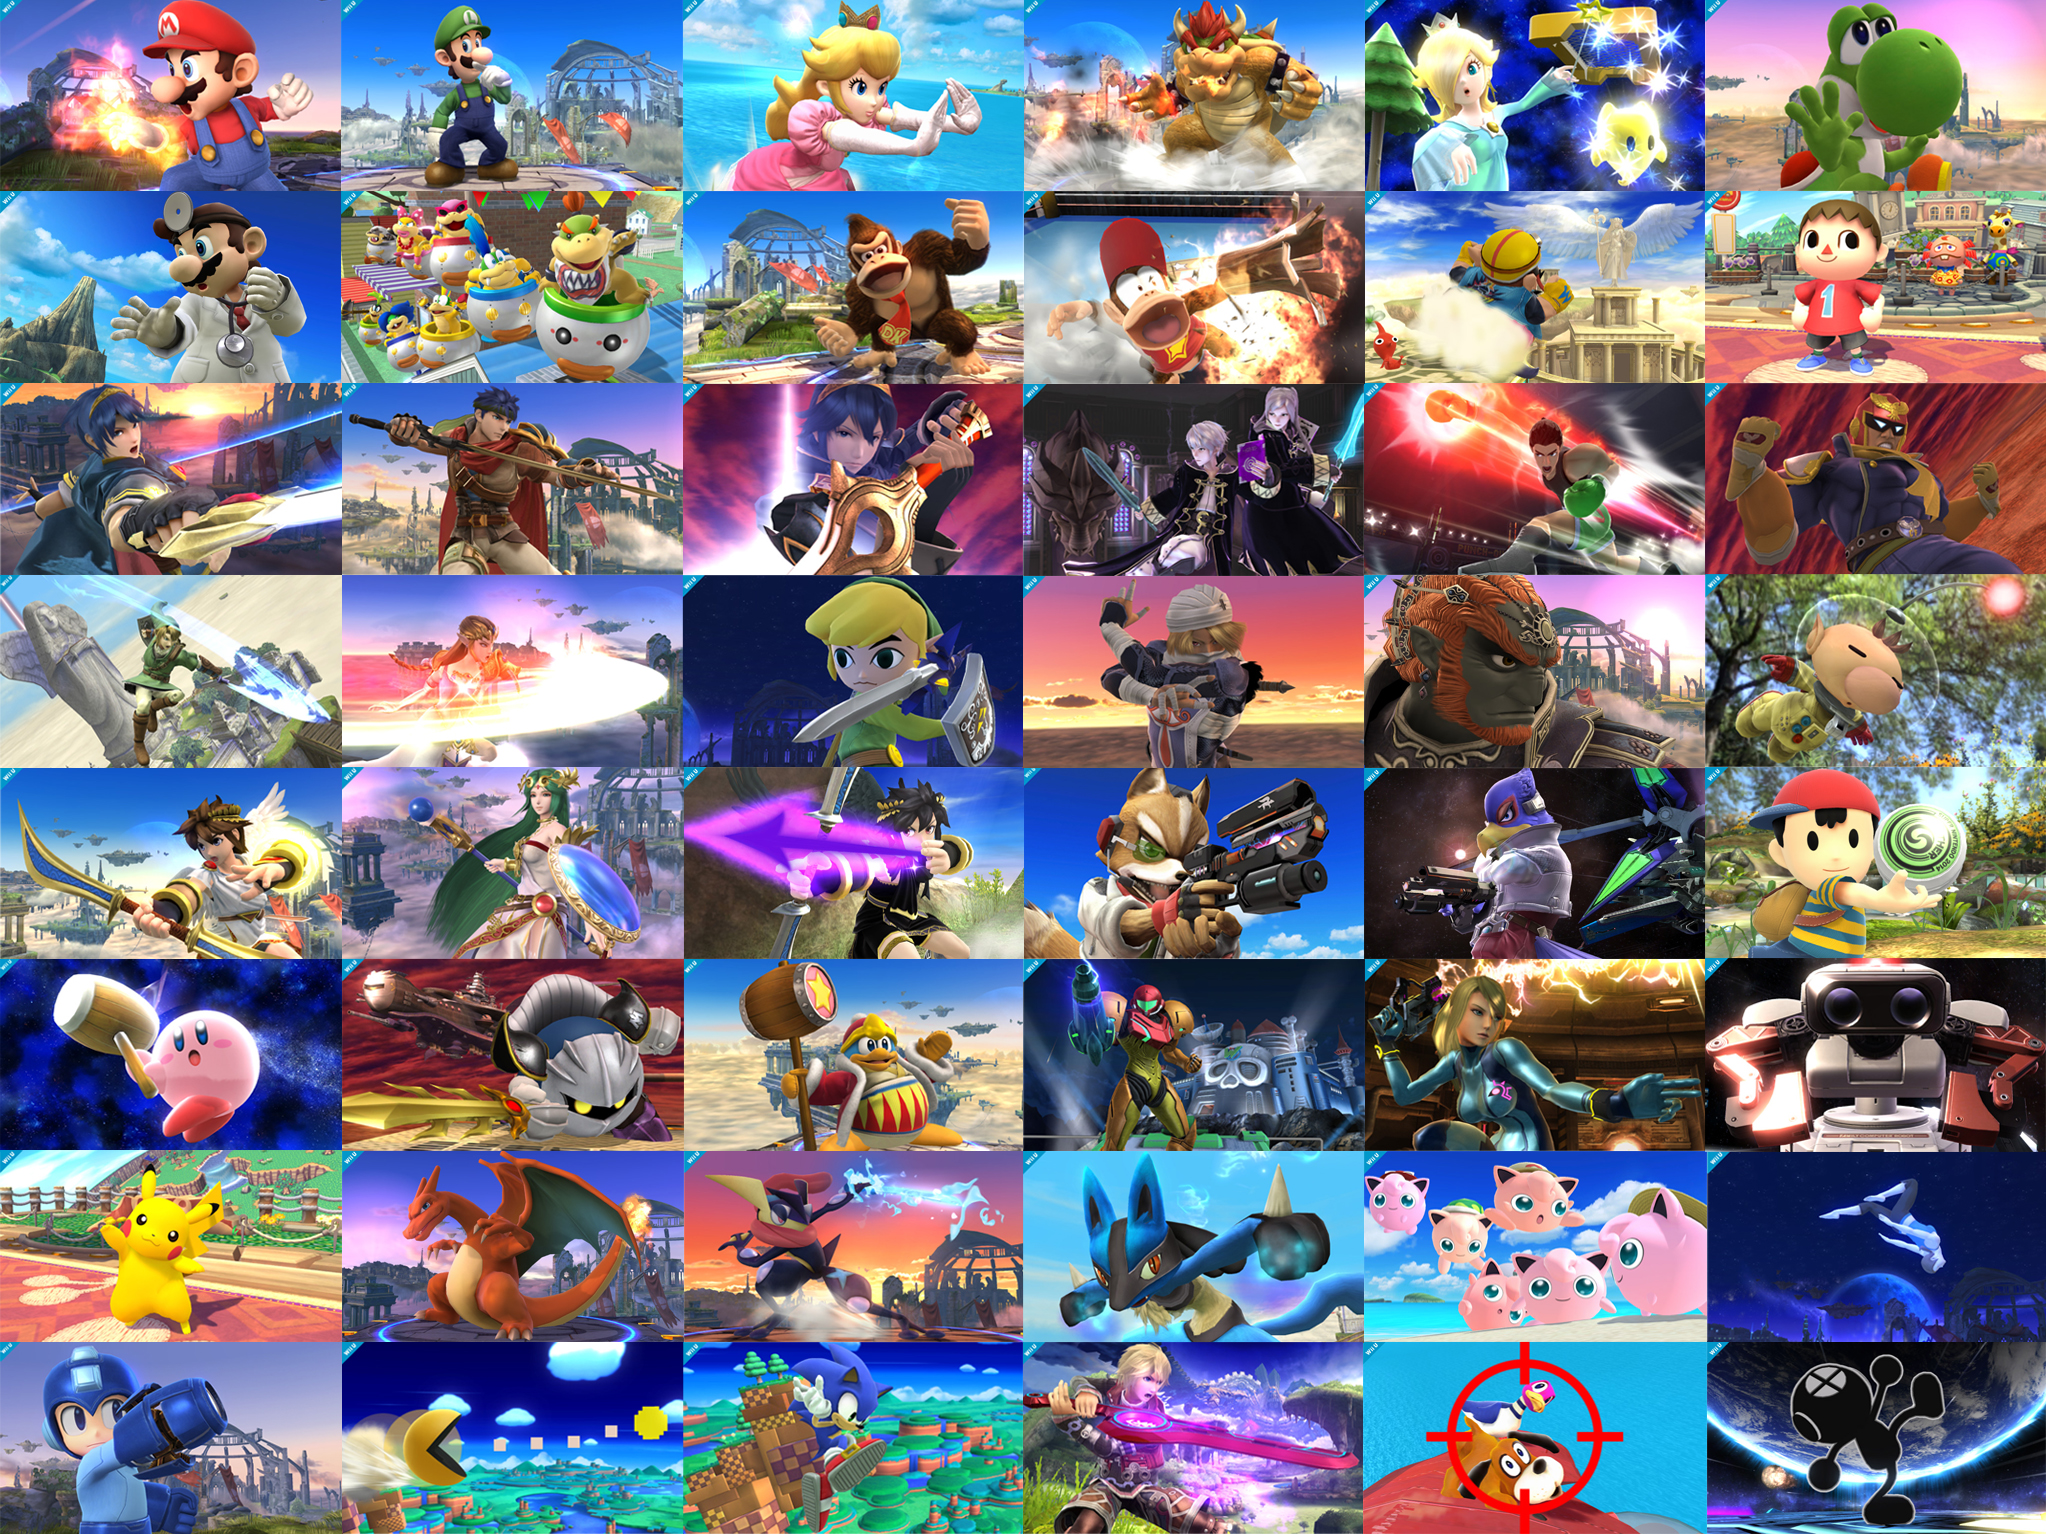 Super Smash Bros Wii U 3DS Character Shots By PacDuck